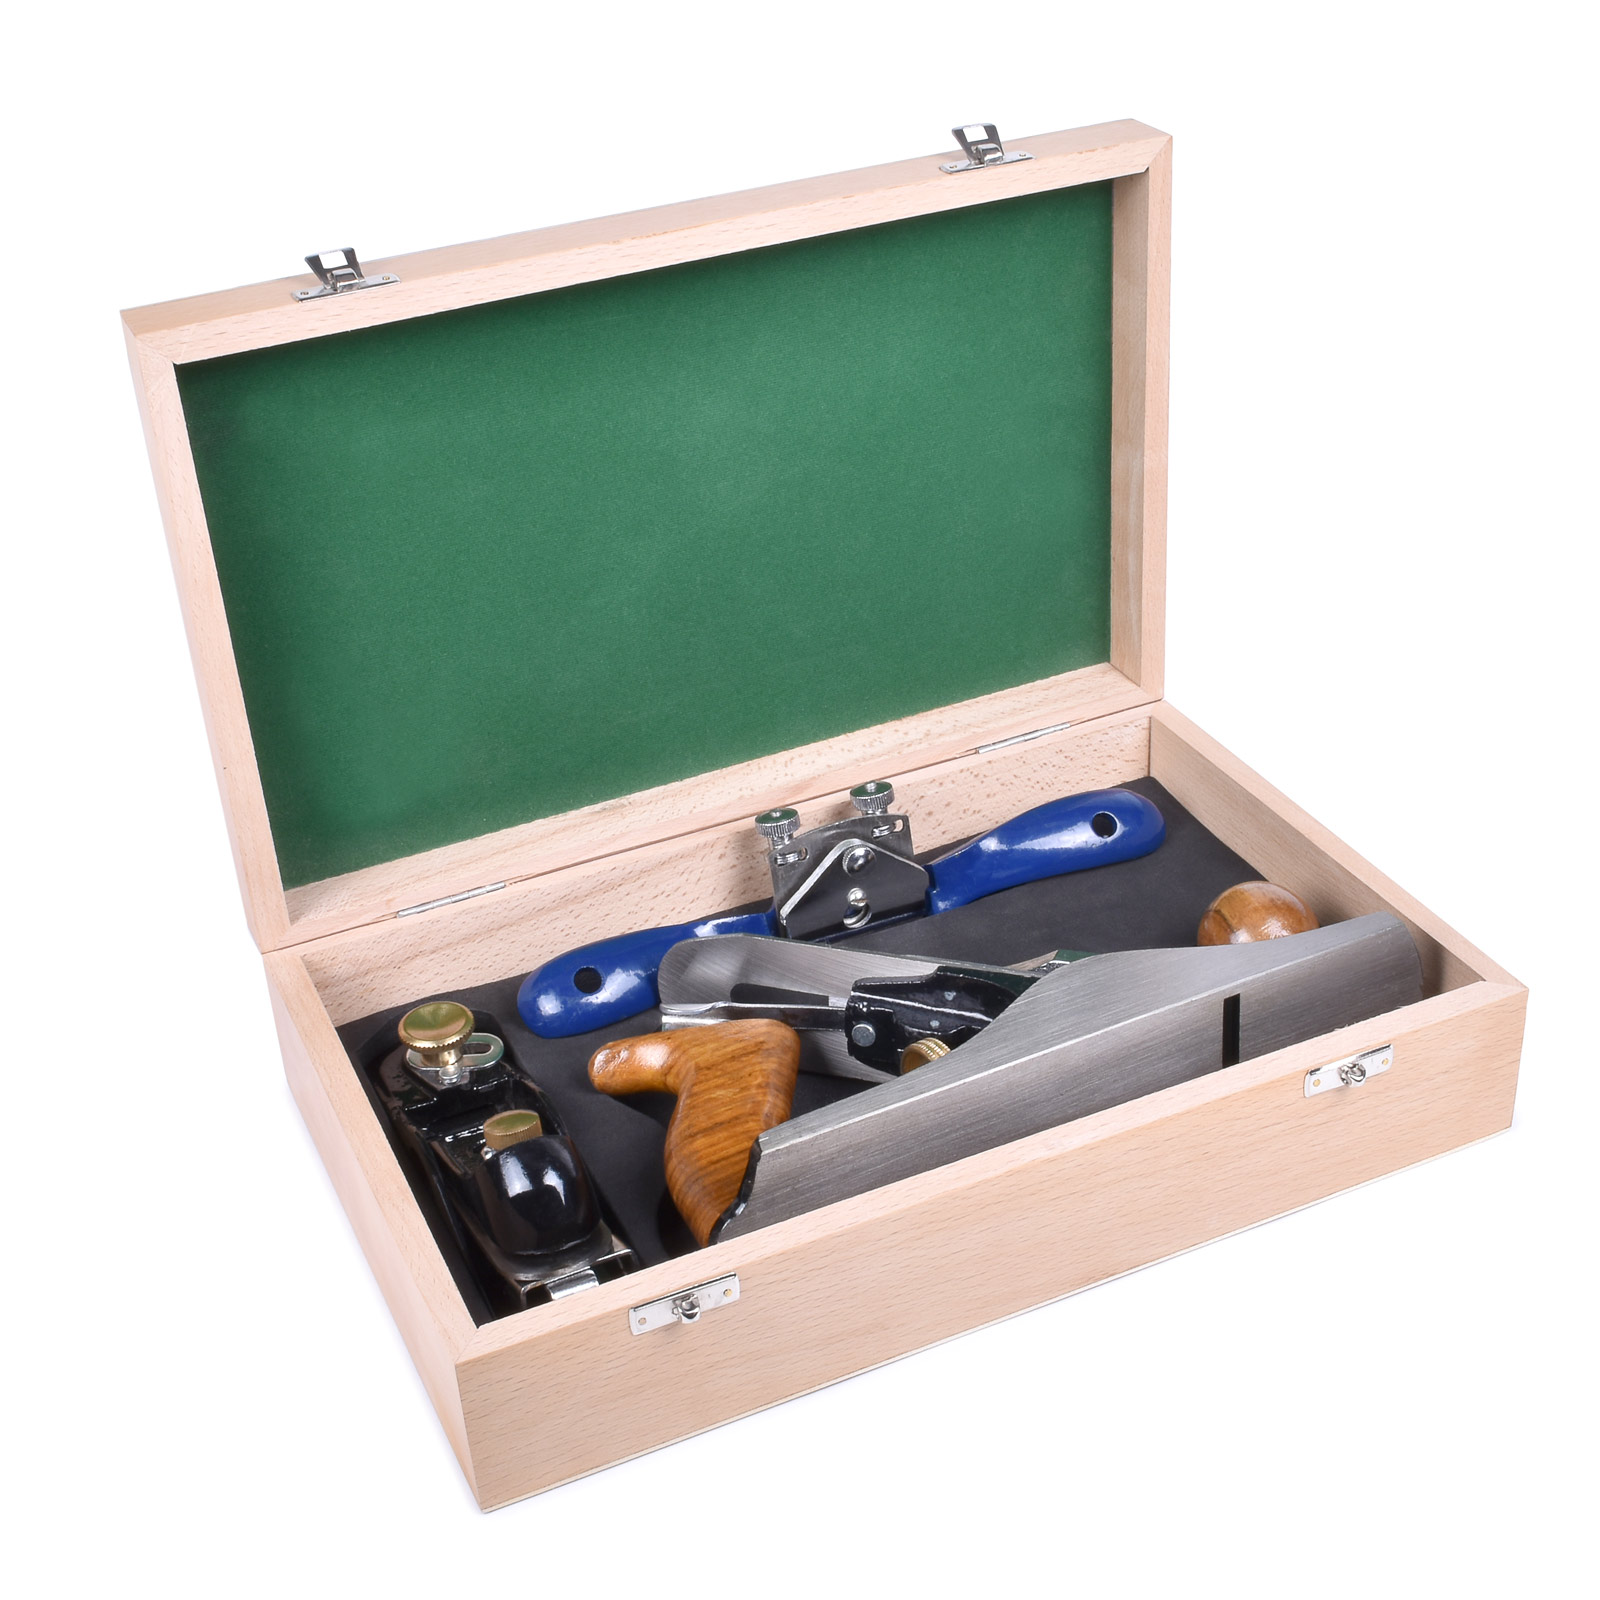 3-piece Woodworking Plane Set